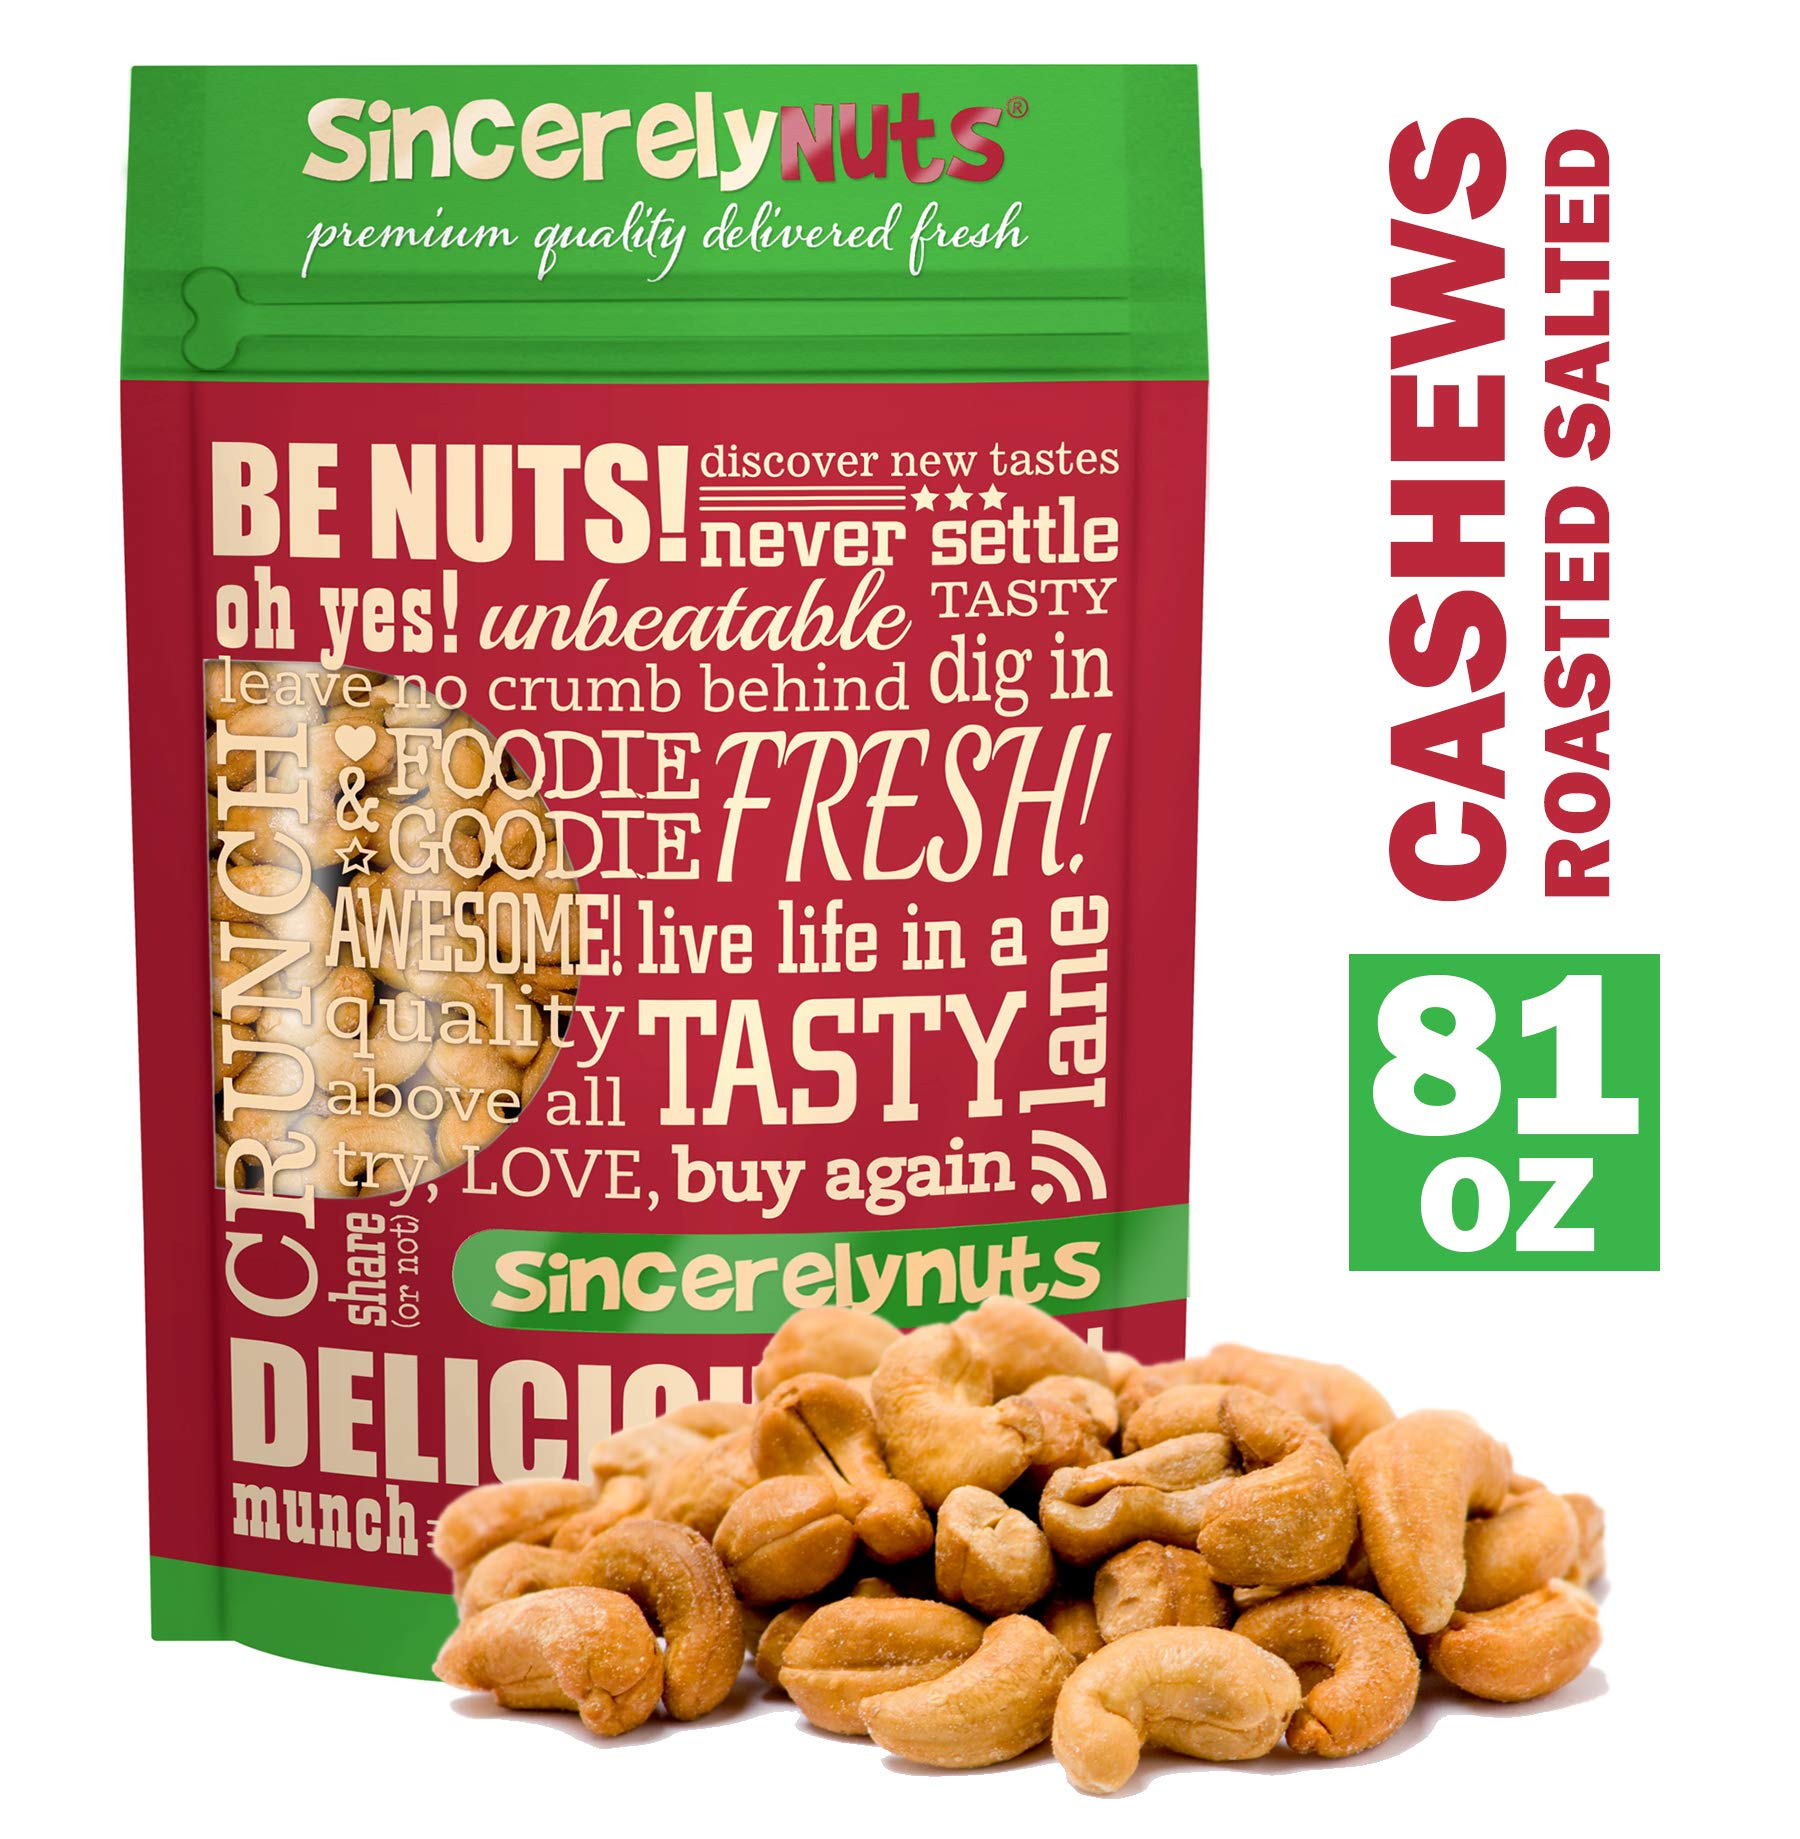 Sincerely Nuts - Whole Cashews Roasted and Salted | Five Lb. Bag | Deluxe Kosher Snack Food | Healthy Source of Protein, Vitamin & Mineral Nutritional Content | Gourmet Quality Vegan Cashew Nut